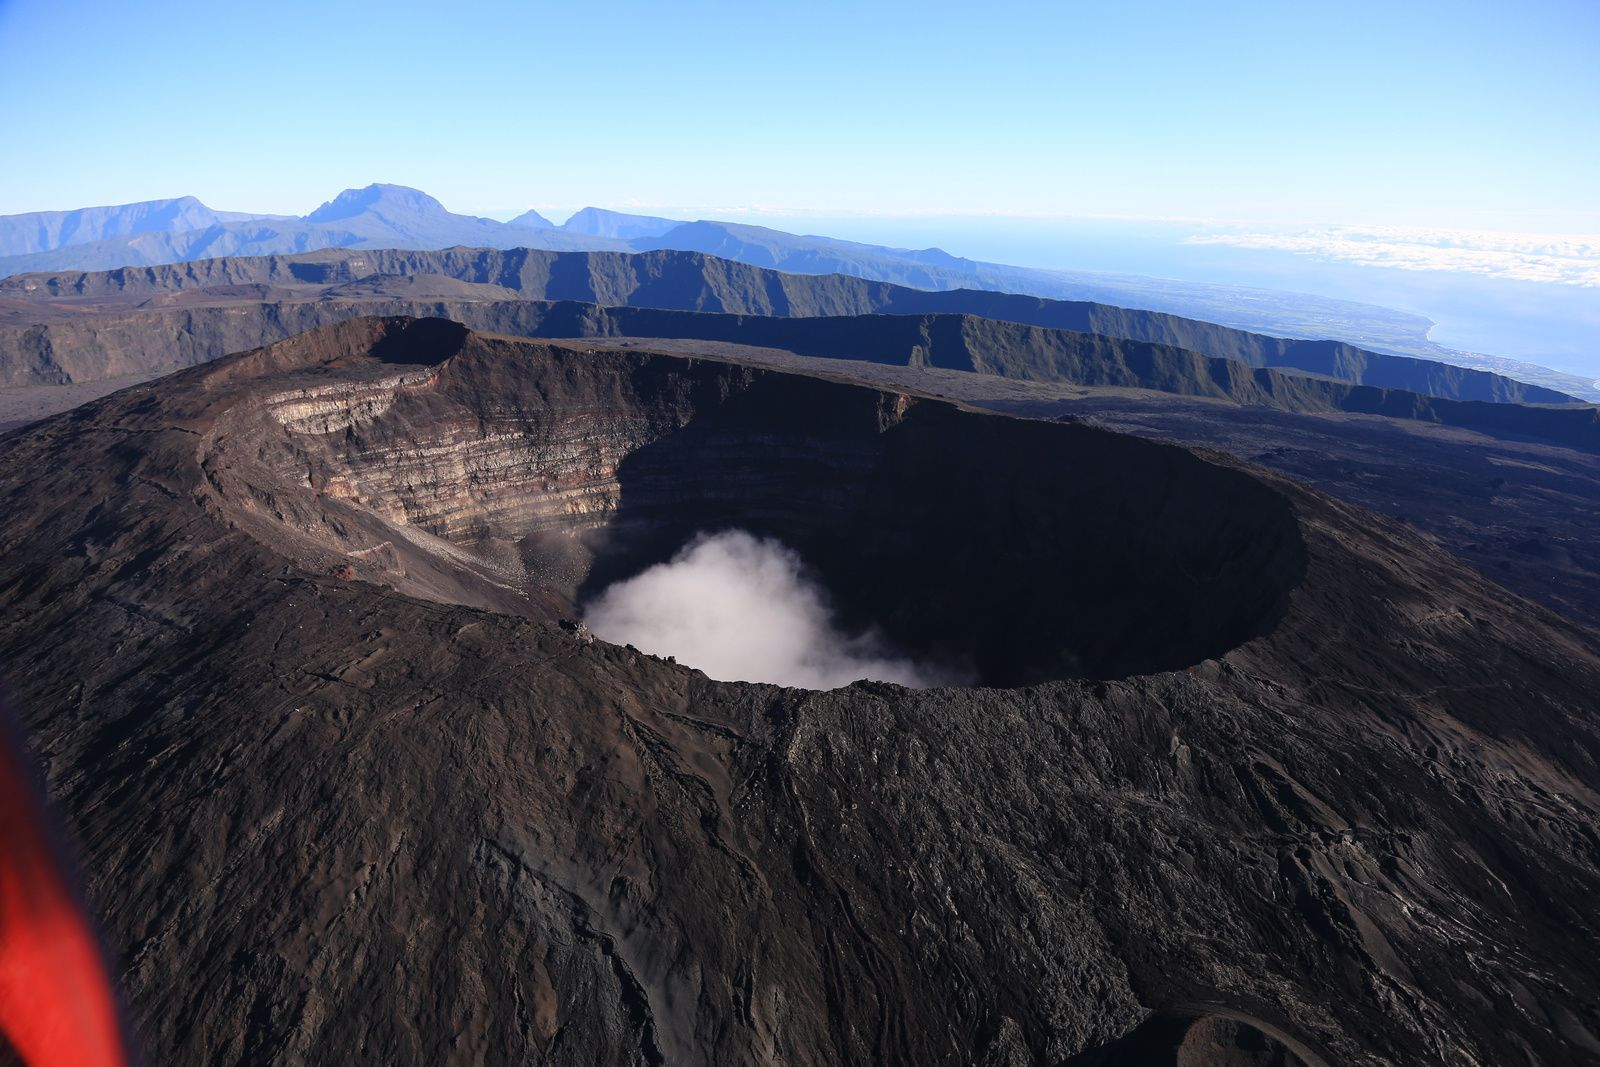 Piton de La Fournaise - the crater Dolomieu, with in the background, the ramparts of Enclos Fouqué and the Piton des Neiges - photo archive © Bernard Duyck